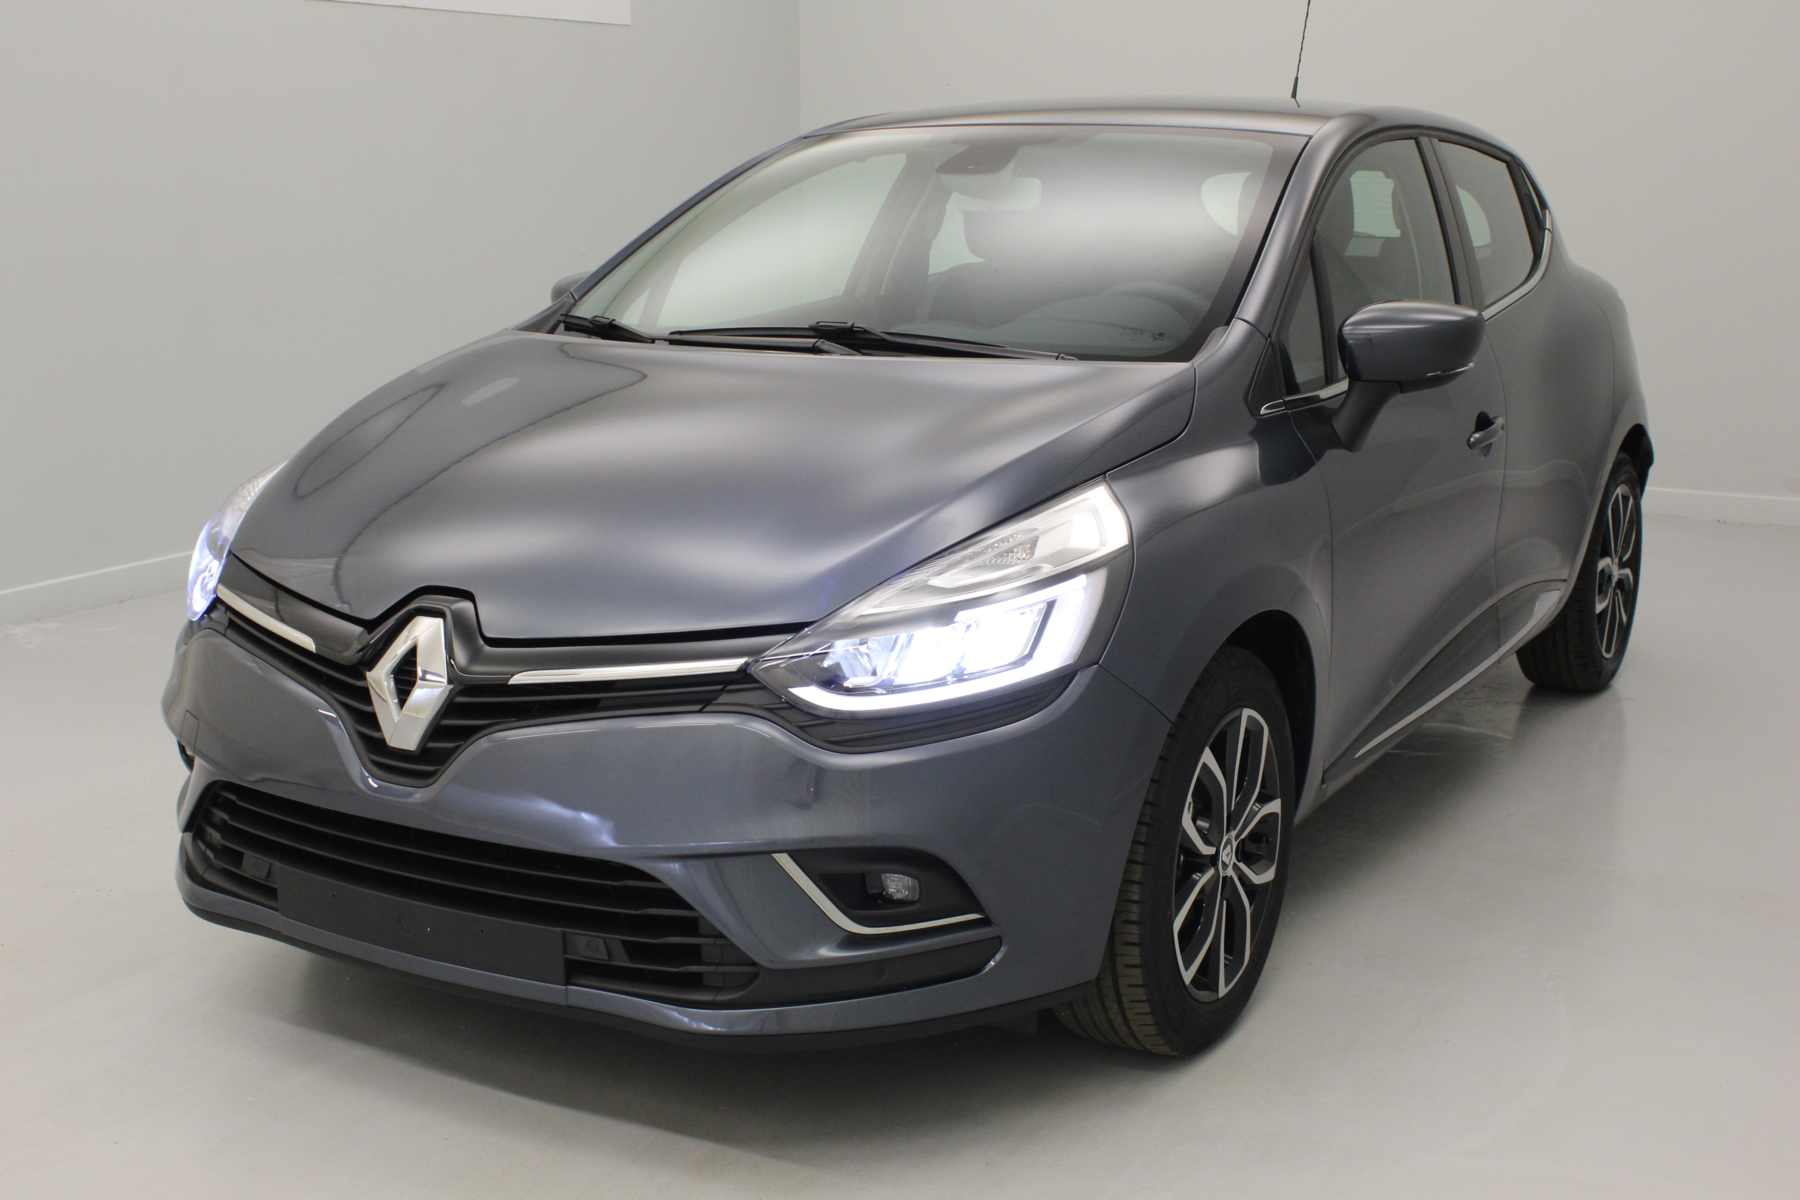 RENAULT Clio IV Nouvelle dCi 90 Energy Intens EDC Gris Titanium  + Pack City Plus avec options